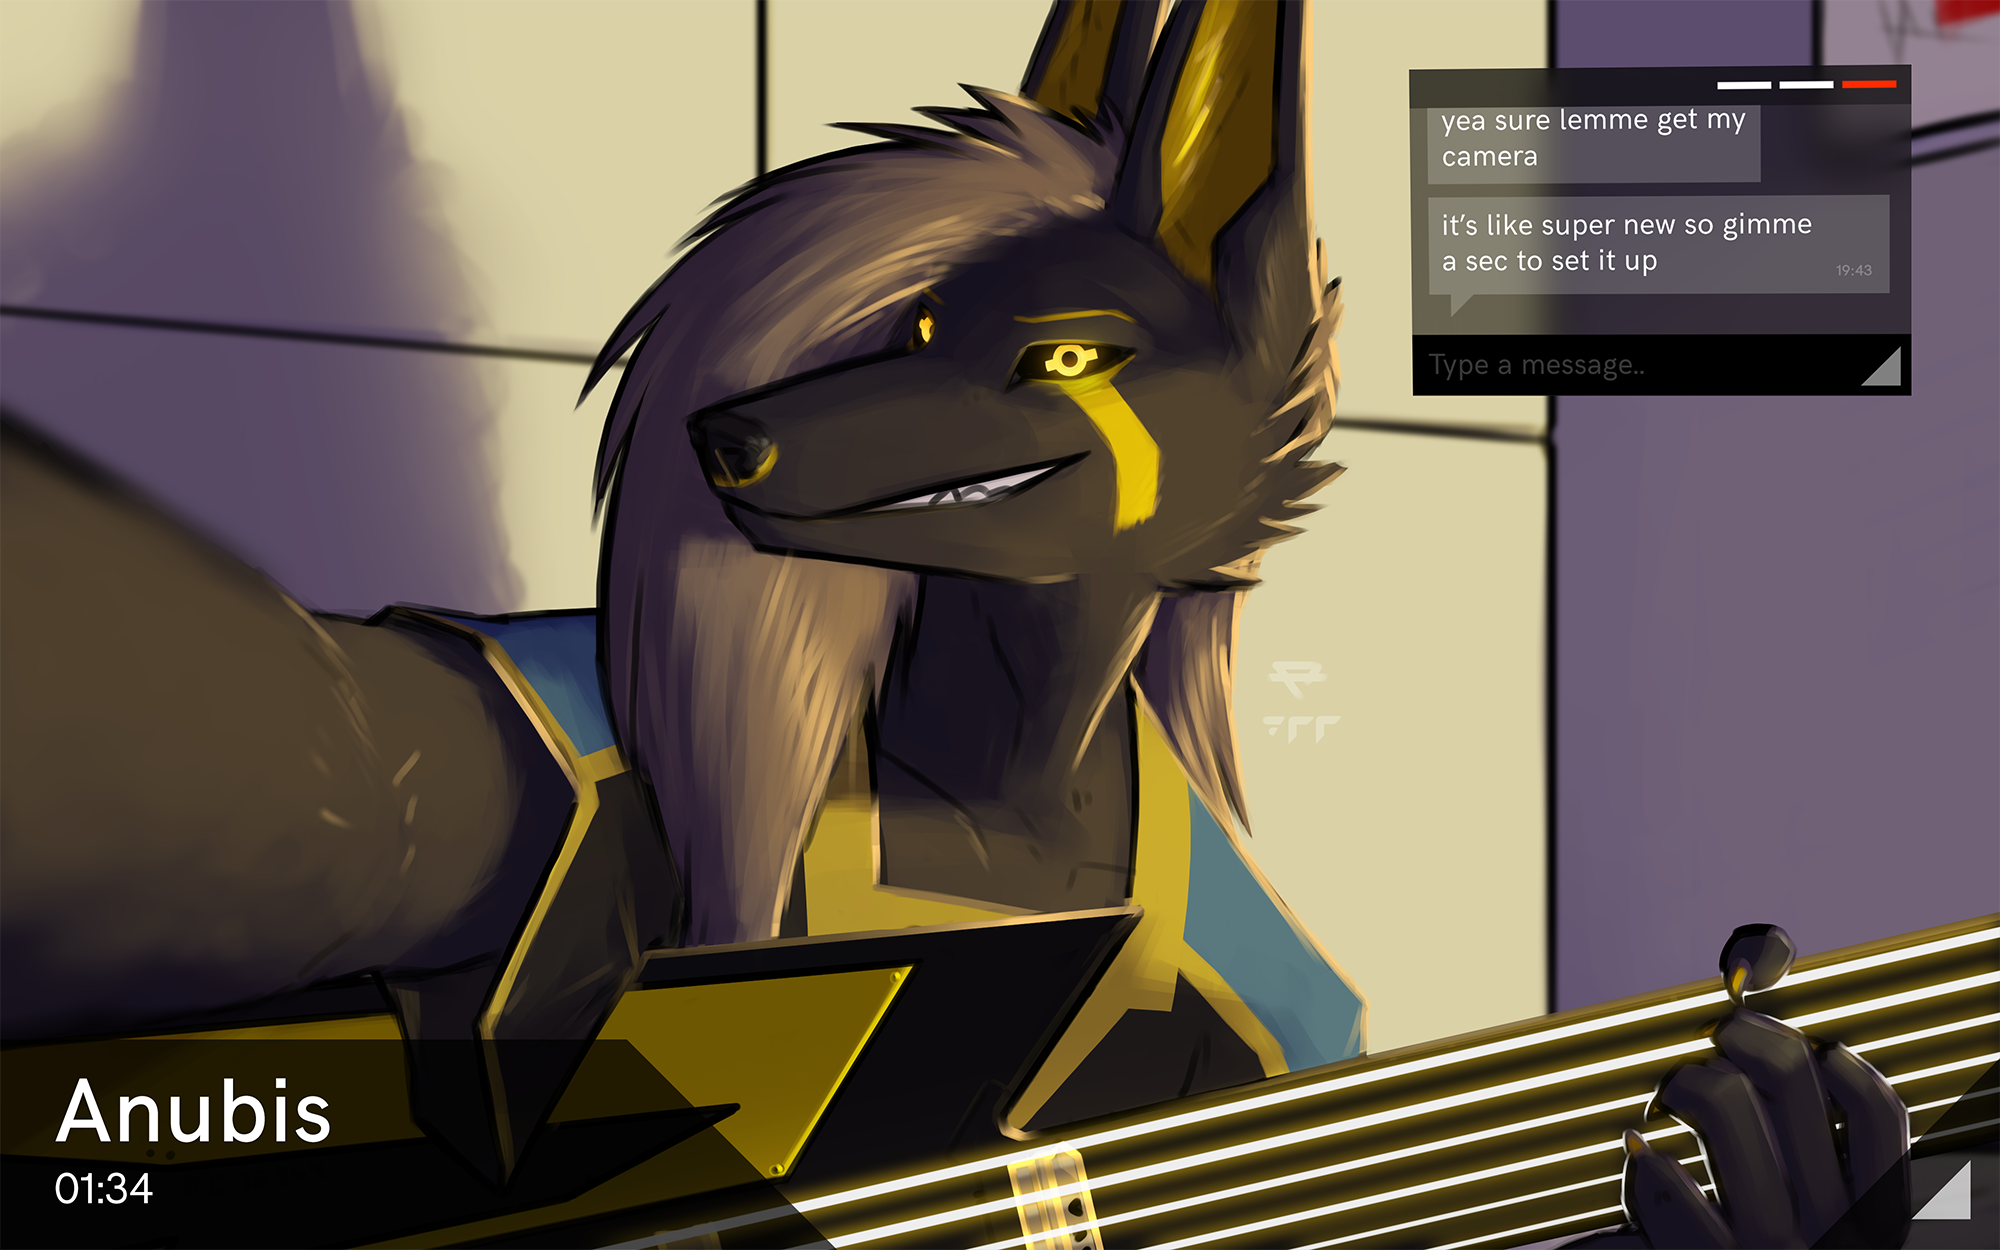 e621 2017 anthro anu anubian_jackal anubis black_fur black_sclera canine claws clothing cybernetics deity digital_media_(artwork) egyptian fur guitar hair hi_res jackal kavaeric looking_at_viewer machine male mammal musical_instrument p700 science_fiction smile solo text user_interface